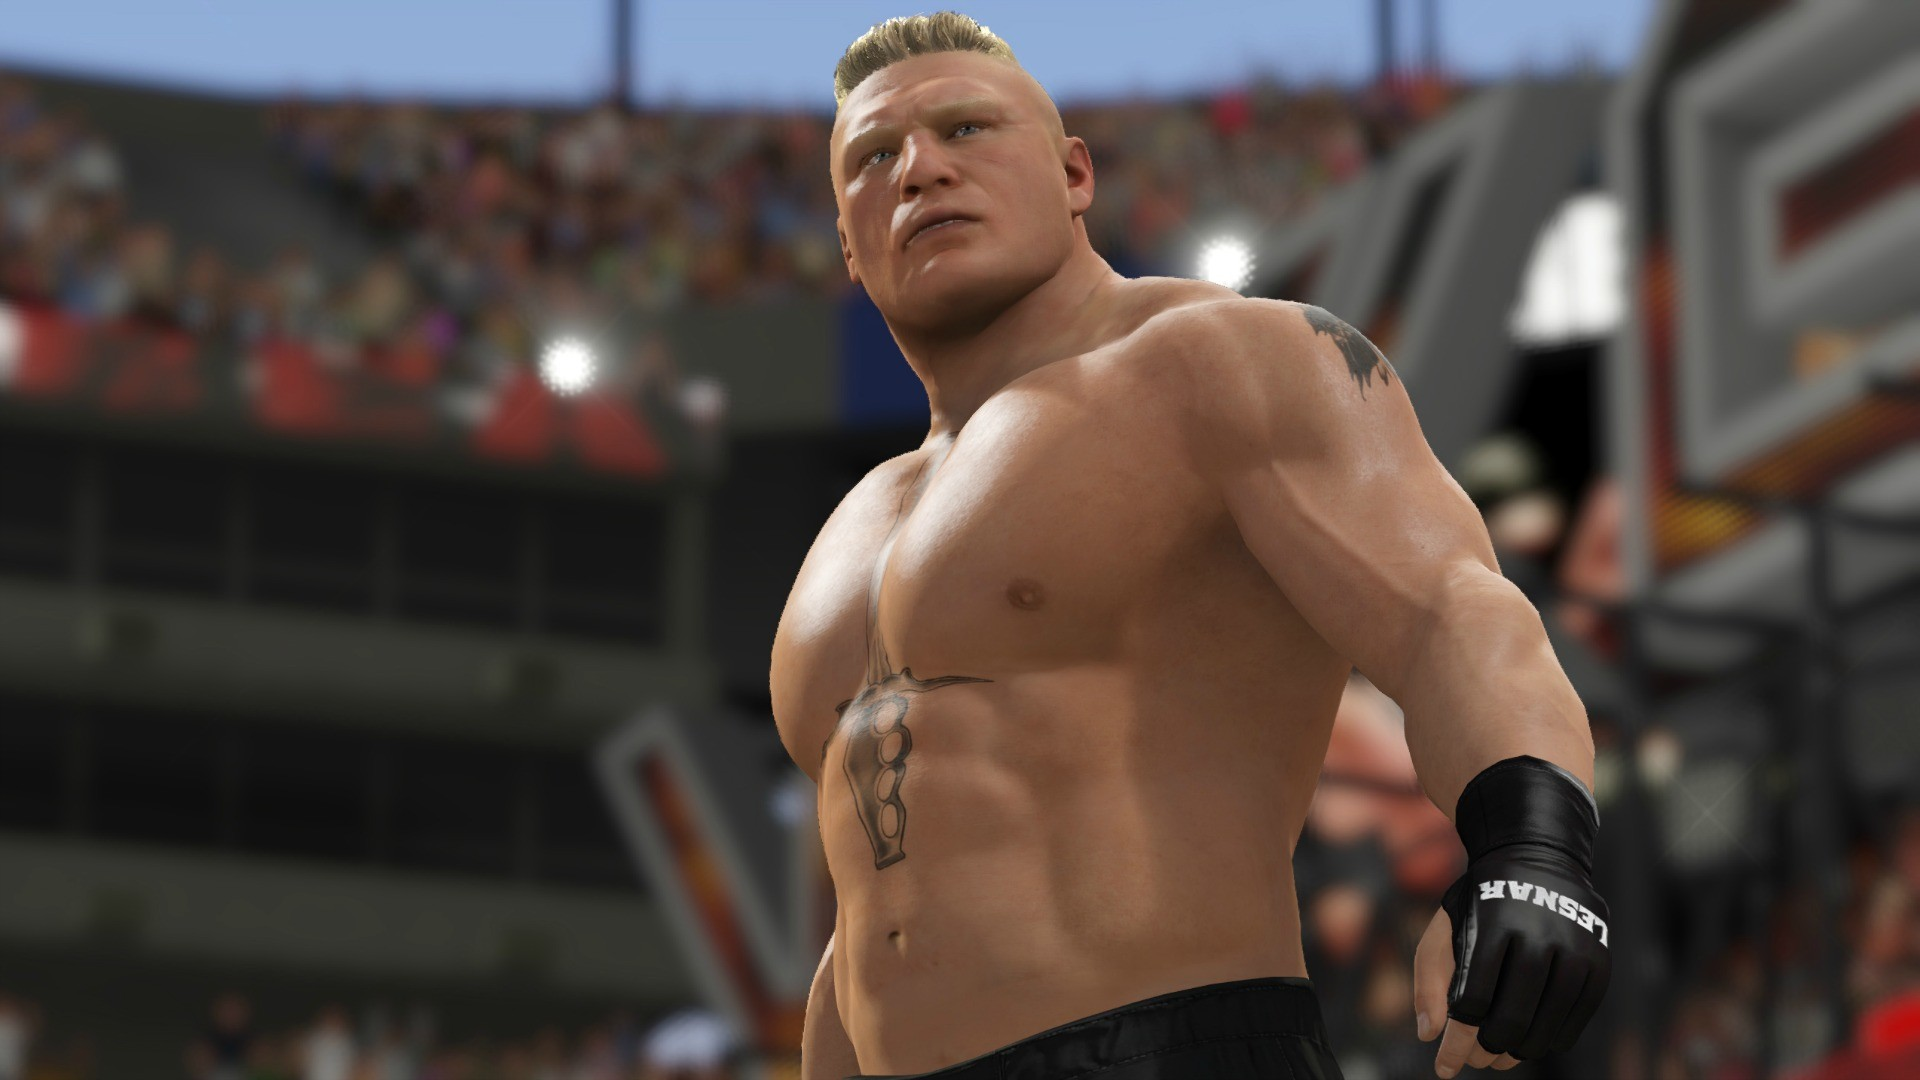 1920x1080 WWE 2K17 wallpapers HD | WWE 2K17 wallpapers HD | Pinterest | Wallpaper